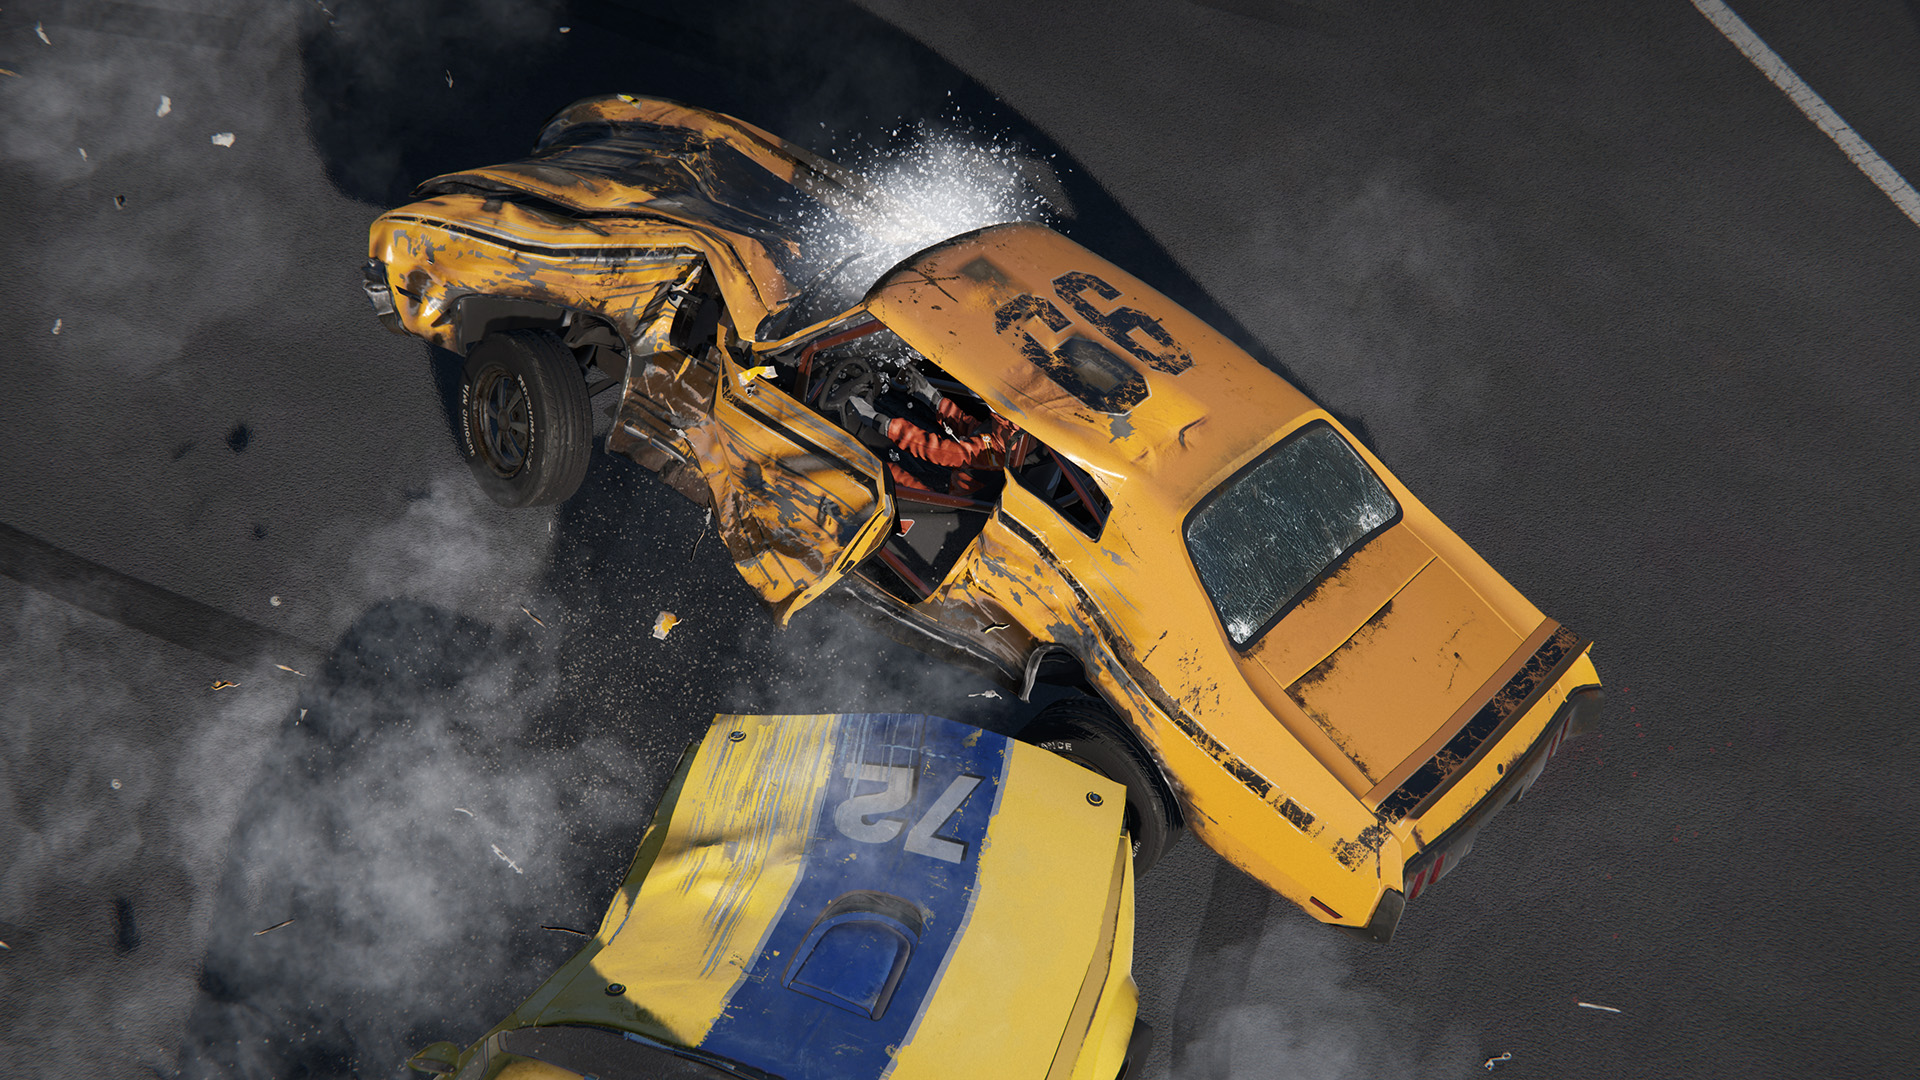 Wreckfest screenshot showing damaged car